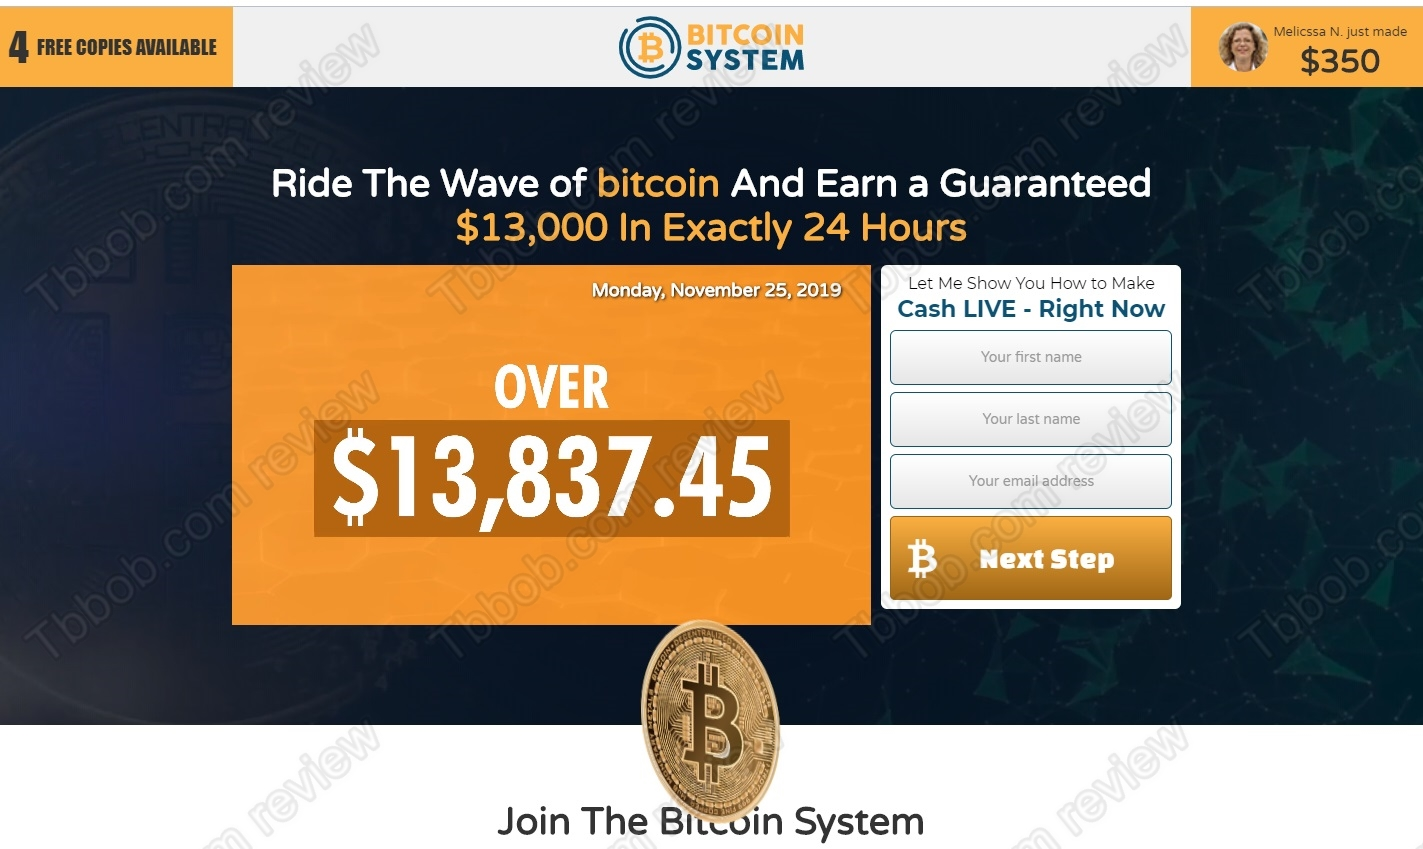 Bitcoin System